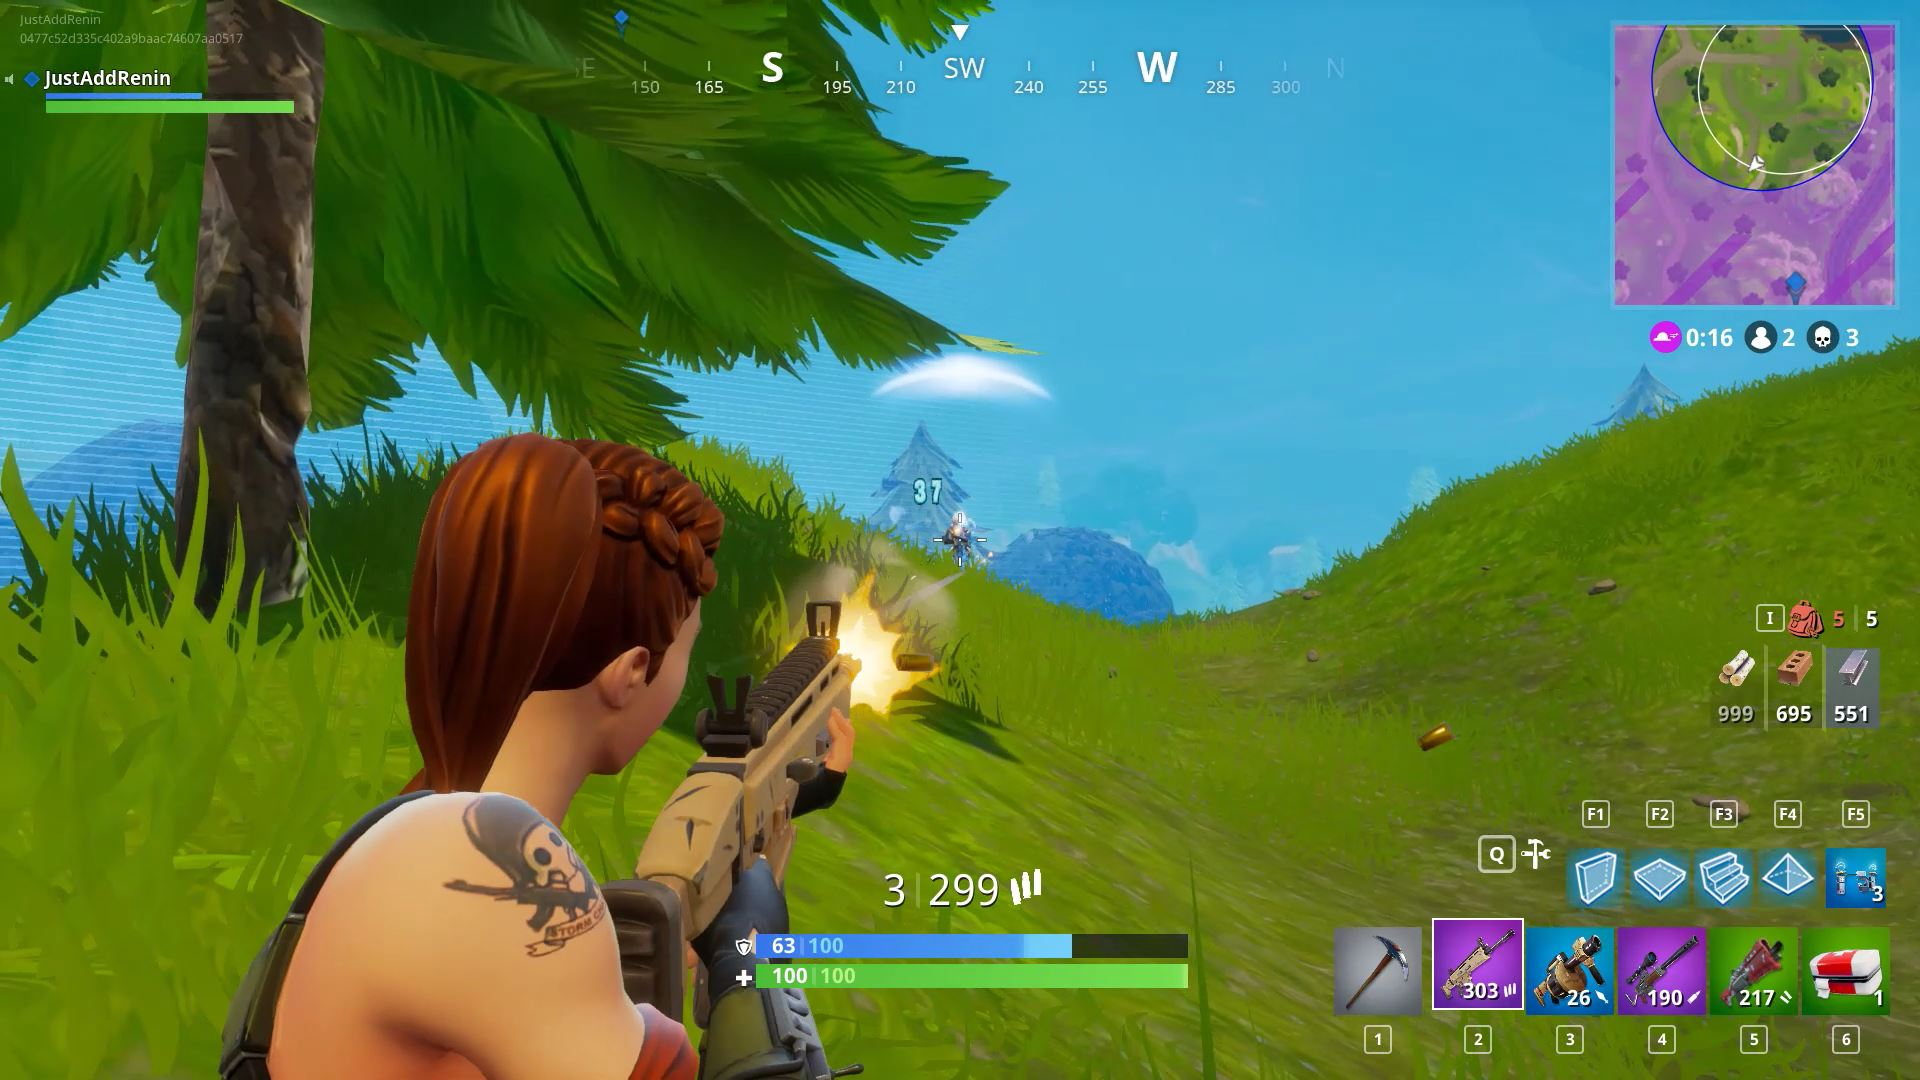 fortnite mobile failed to connect to matchmaking service